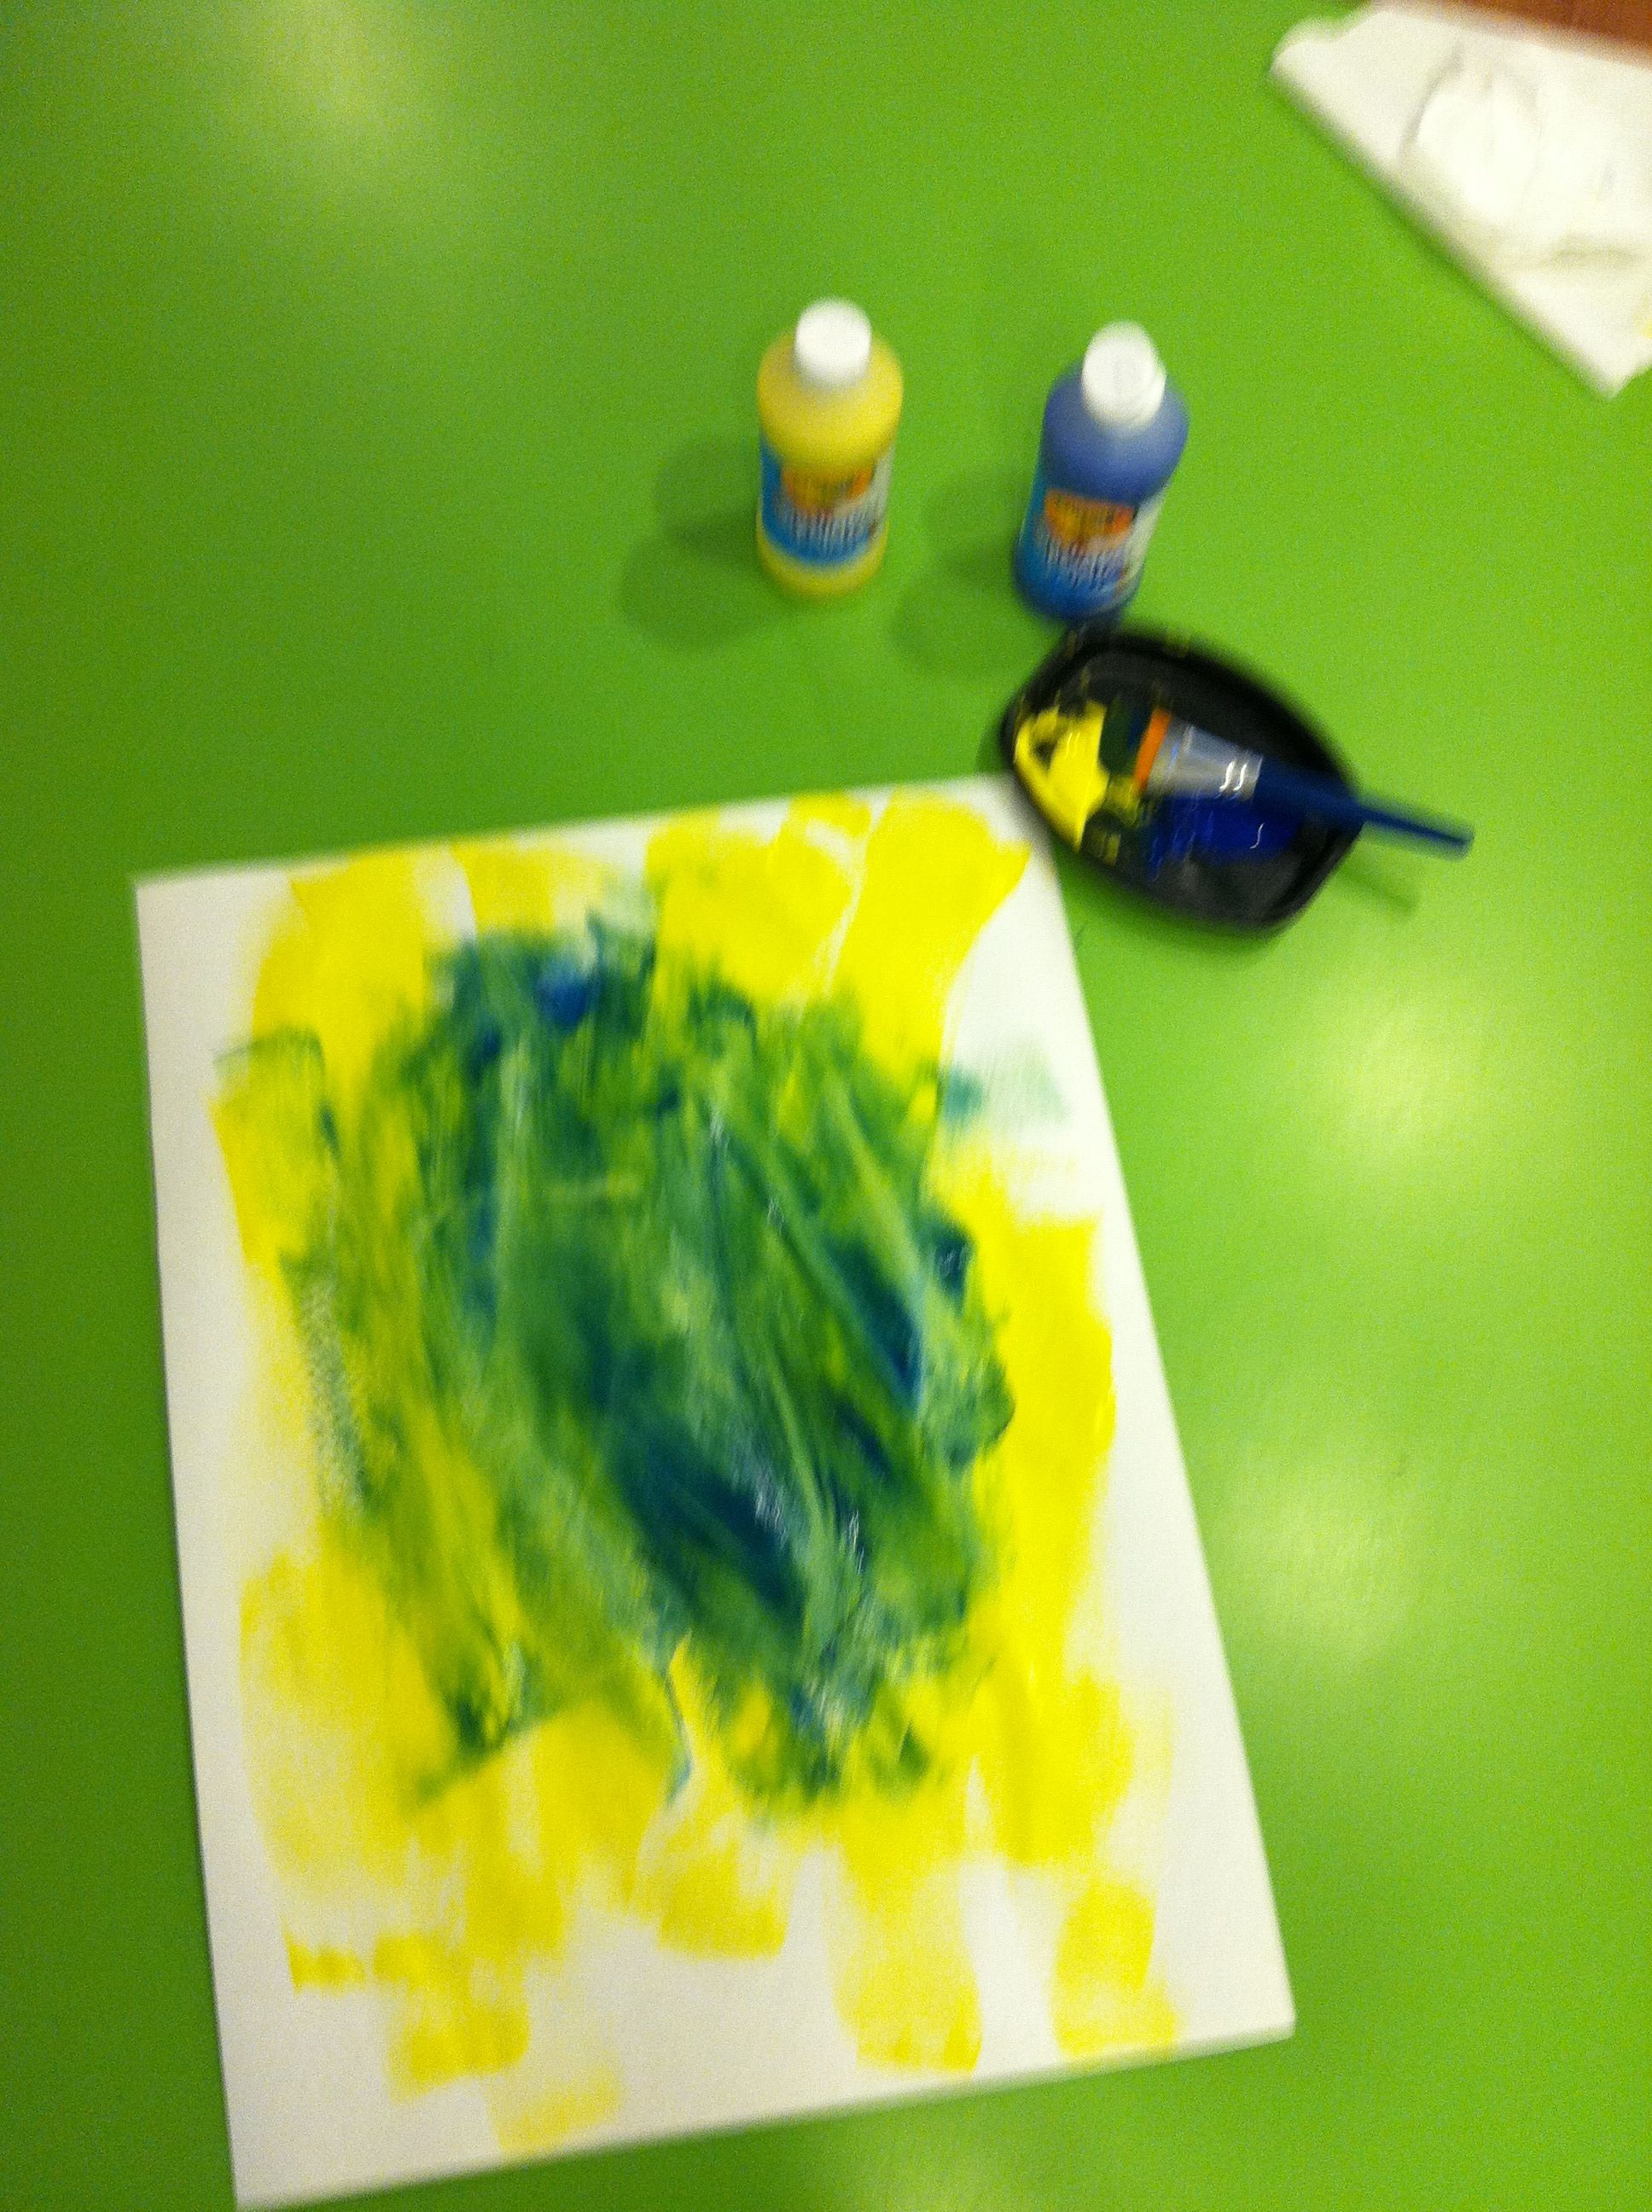 Color mixing Step 2: Add a second primary color and\